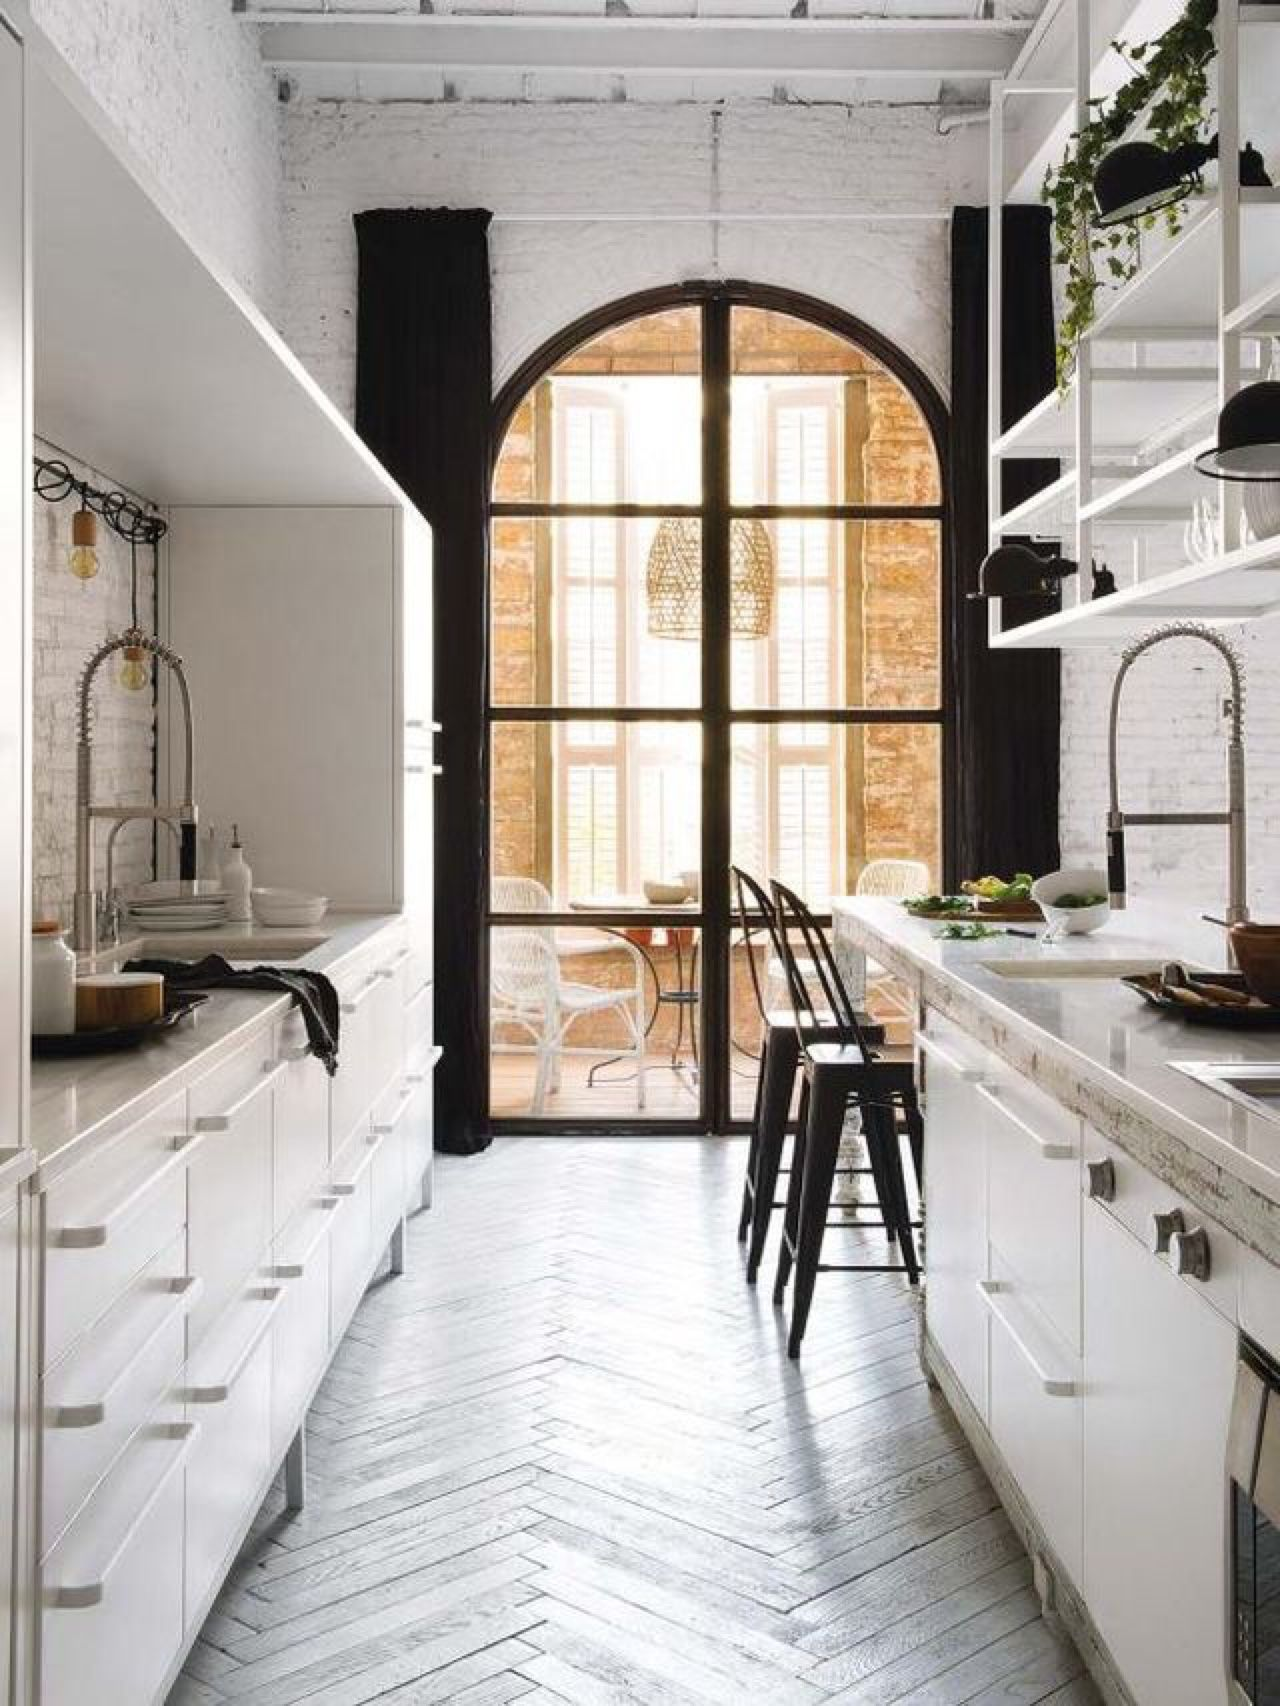 Kitchen sink window decor  an interior is the natural projection of the soul  photo  home